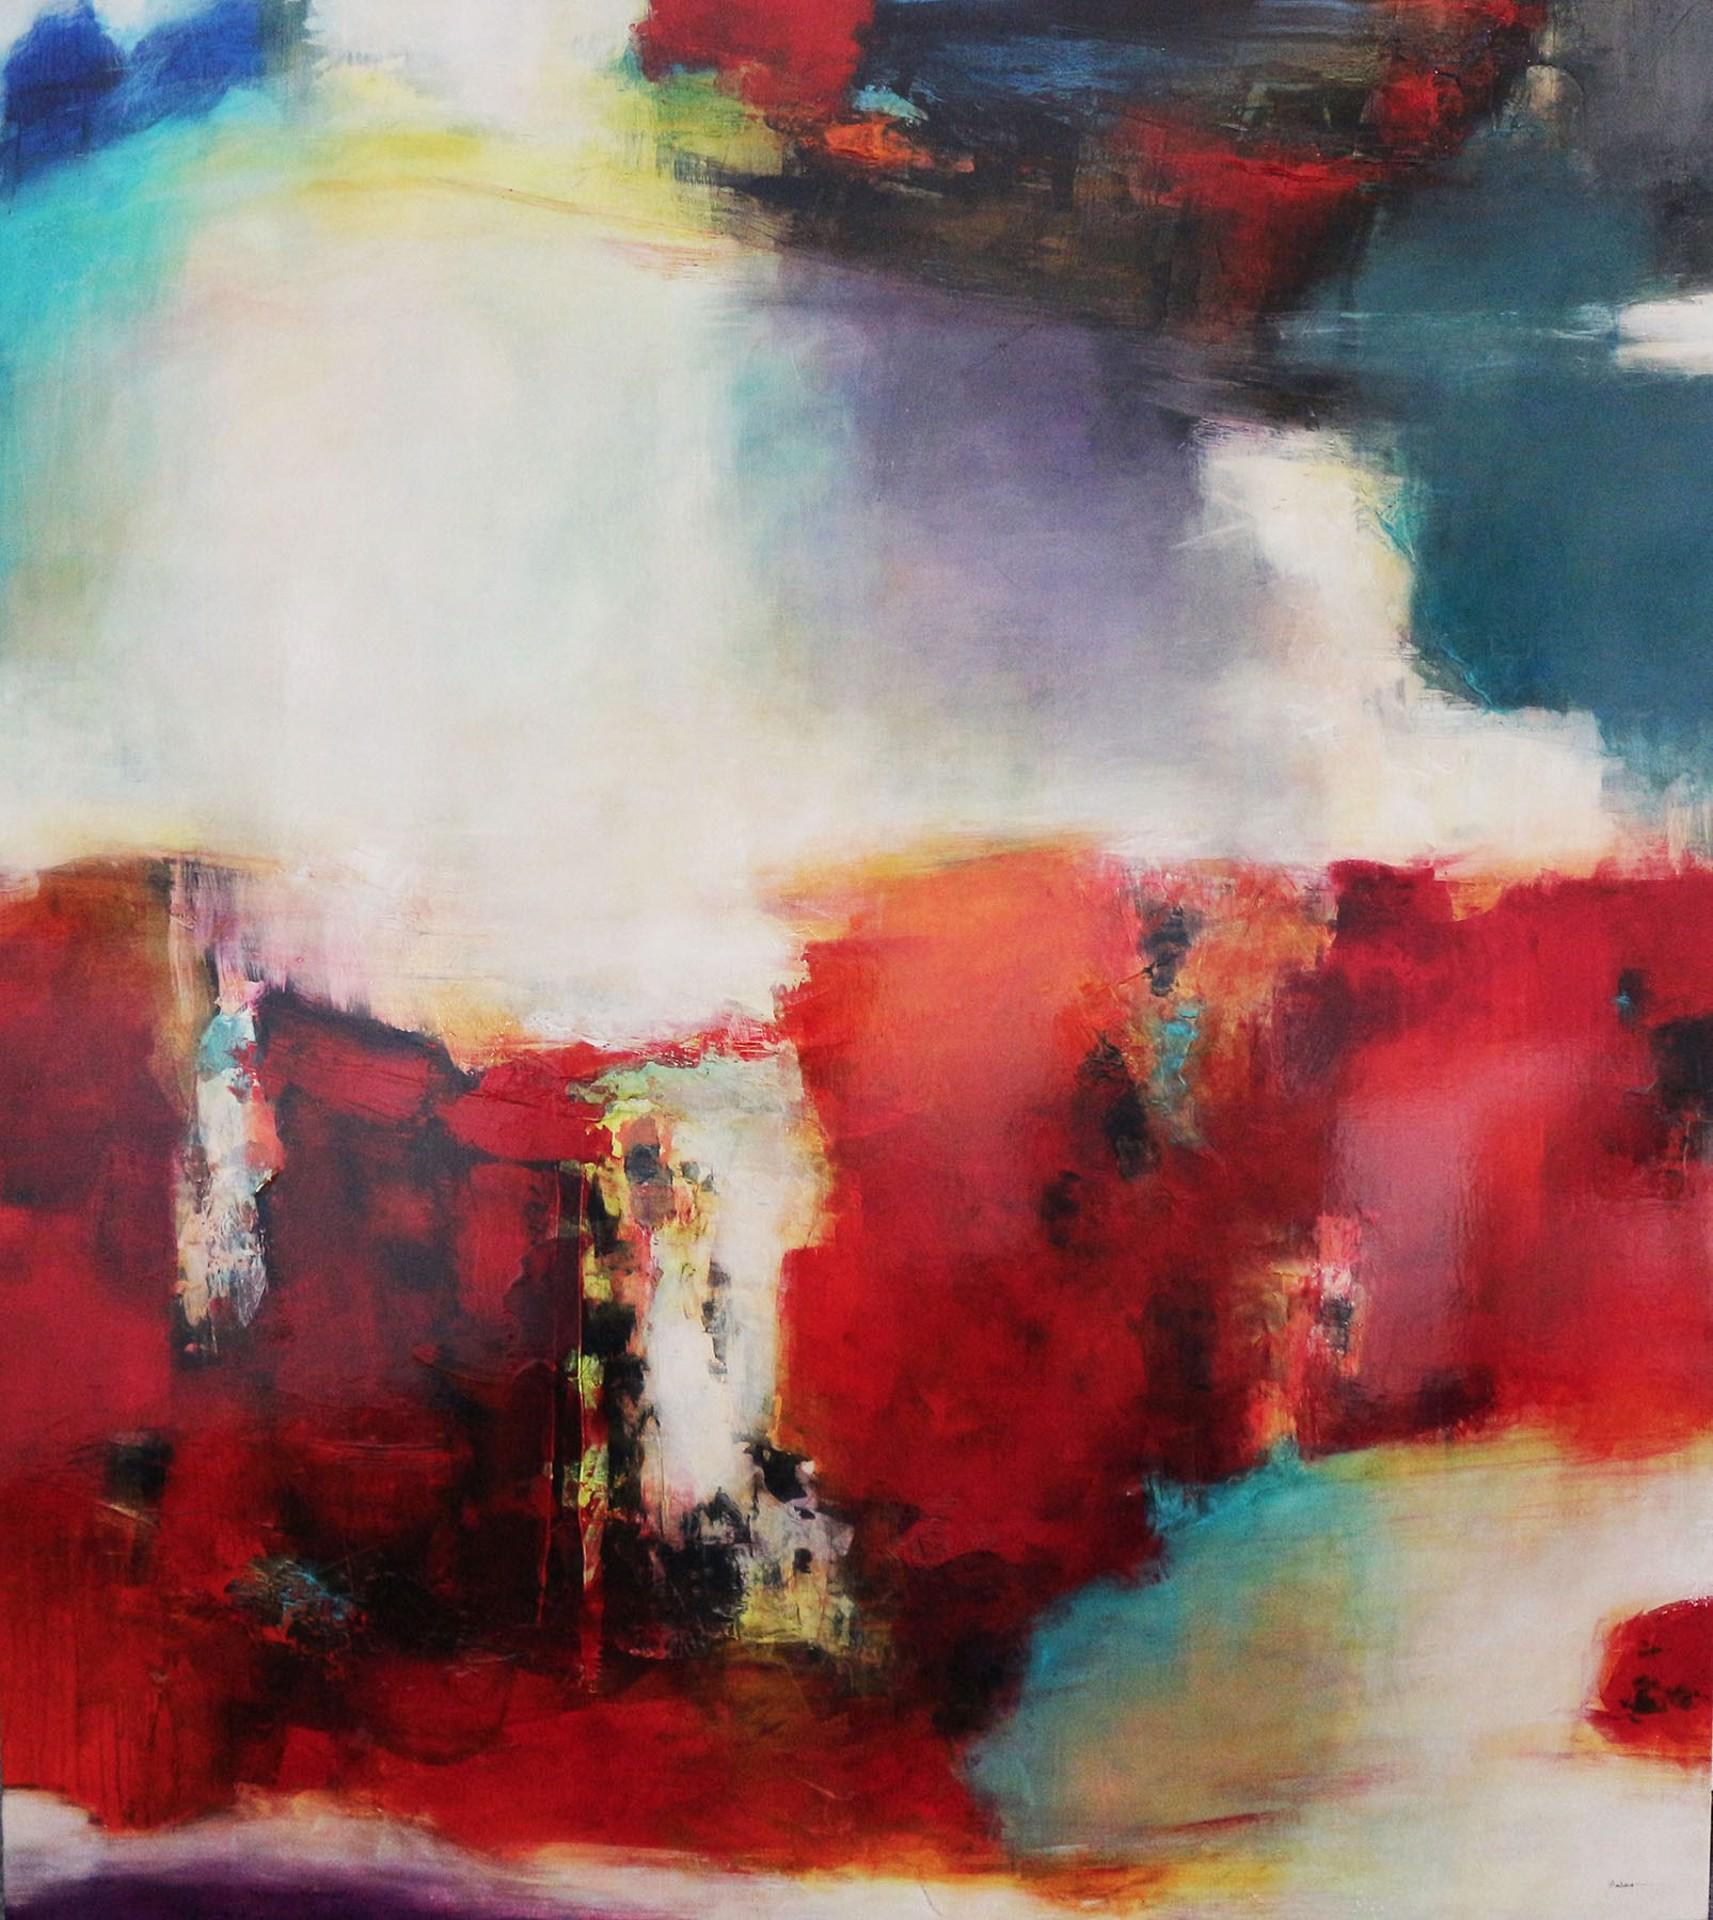 Apparition of Emotions- Abstract Red & Primary Toned Glossed Oil on Canvas